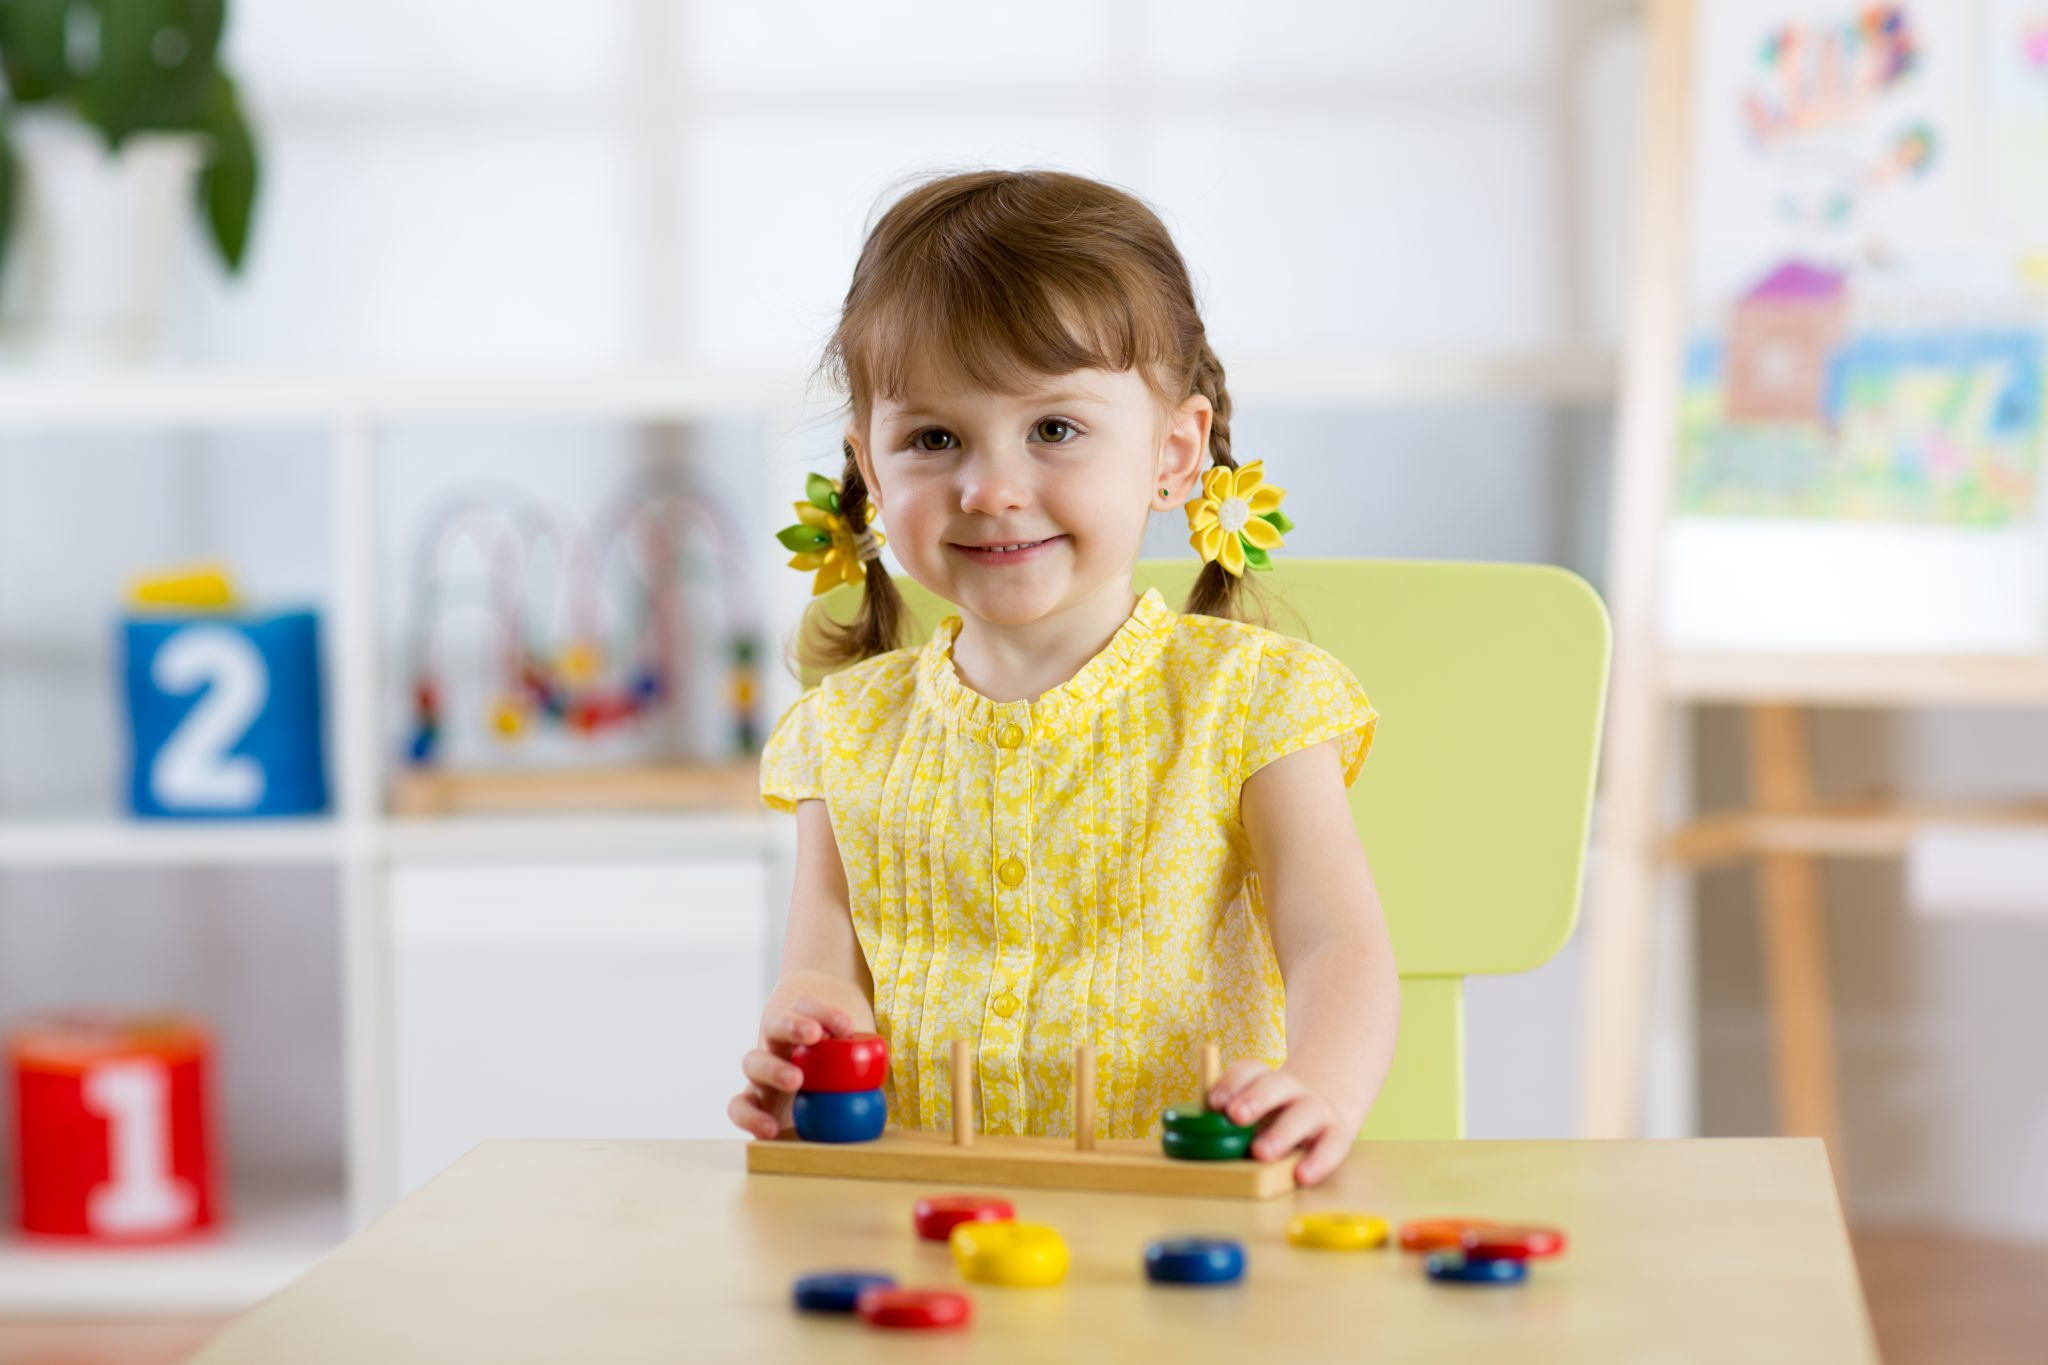 Montessori inspired activities for your 27 month old